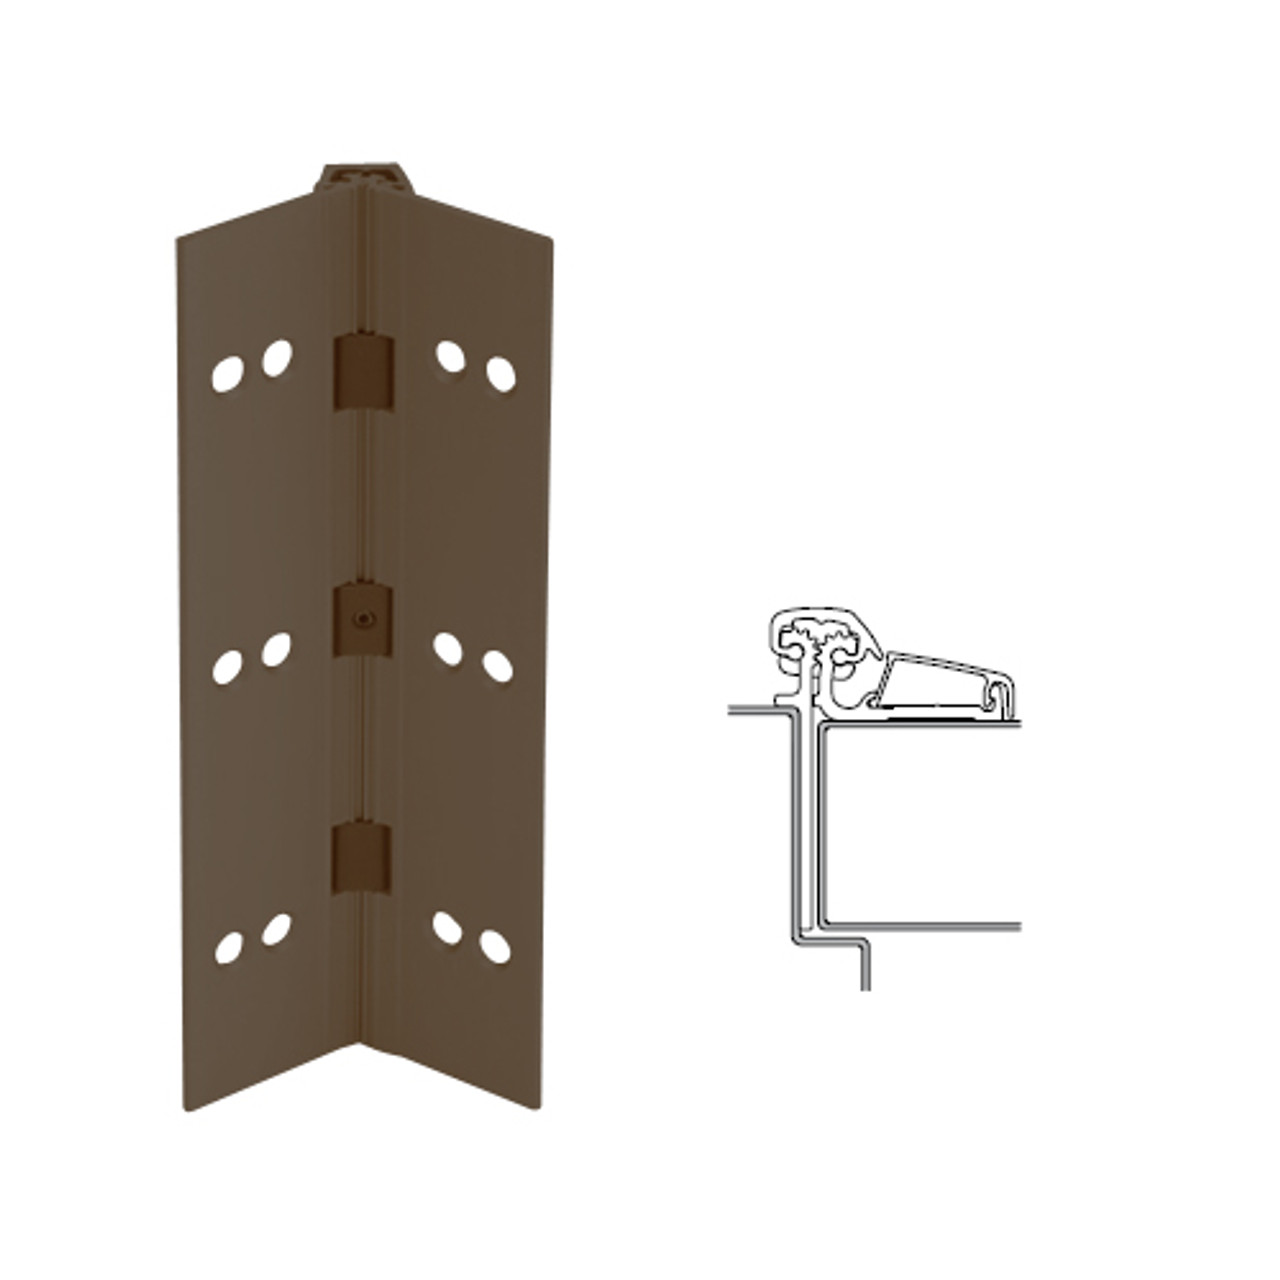 054XY-313AN-120-SECWDHM IVES Adjustable Half Surface Continuous Geared Hinges with Security Screws - Hex Pin Drive in Dark Bronze Anodized